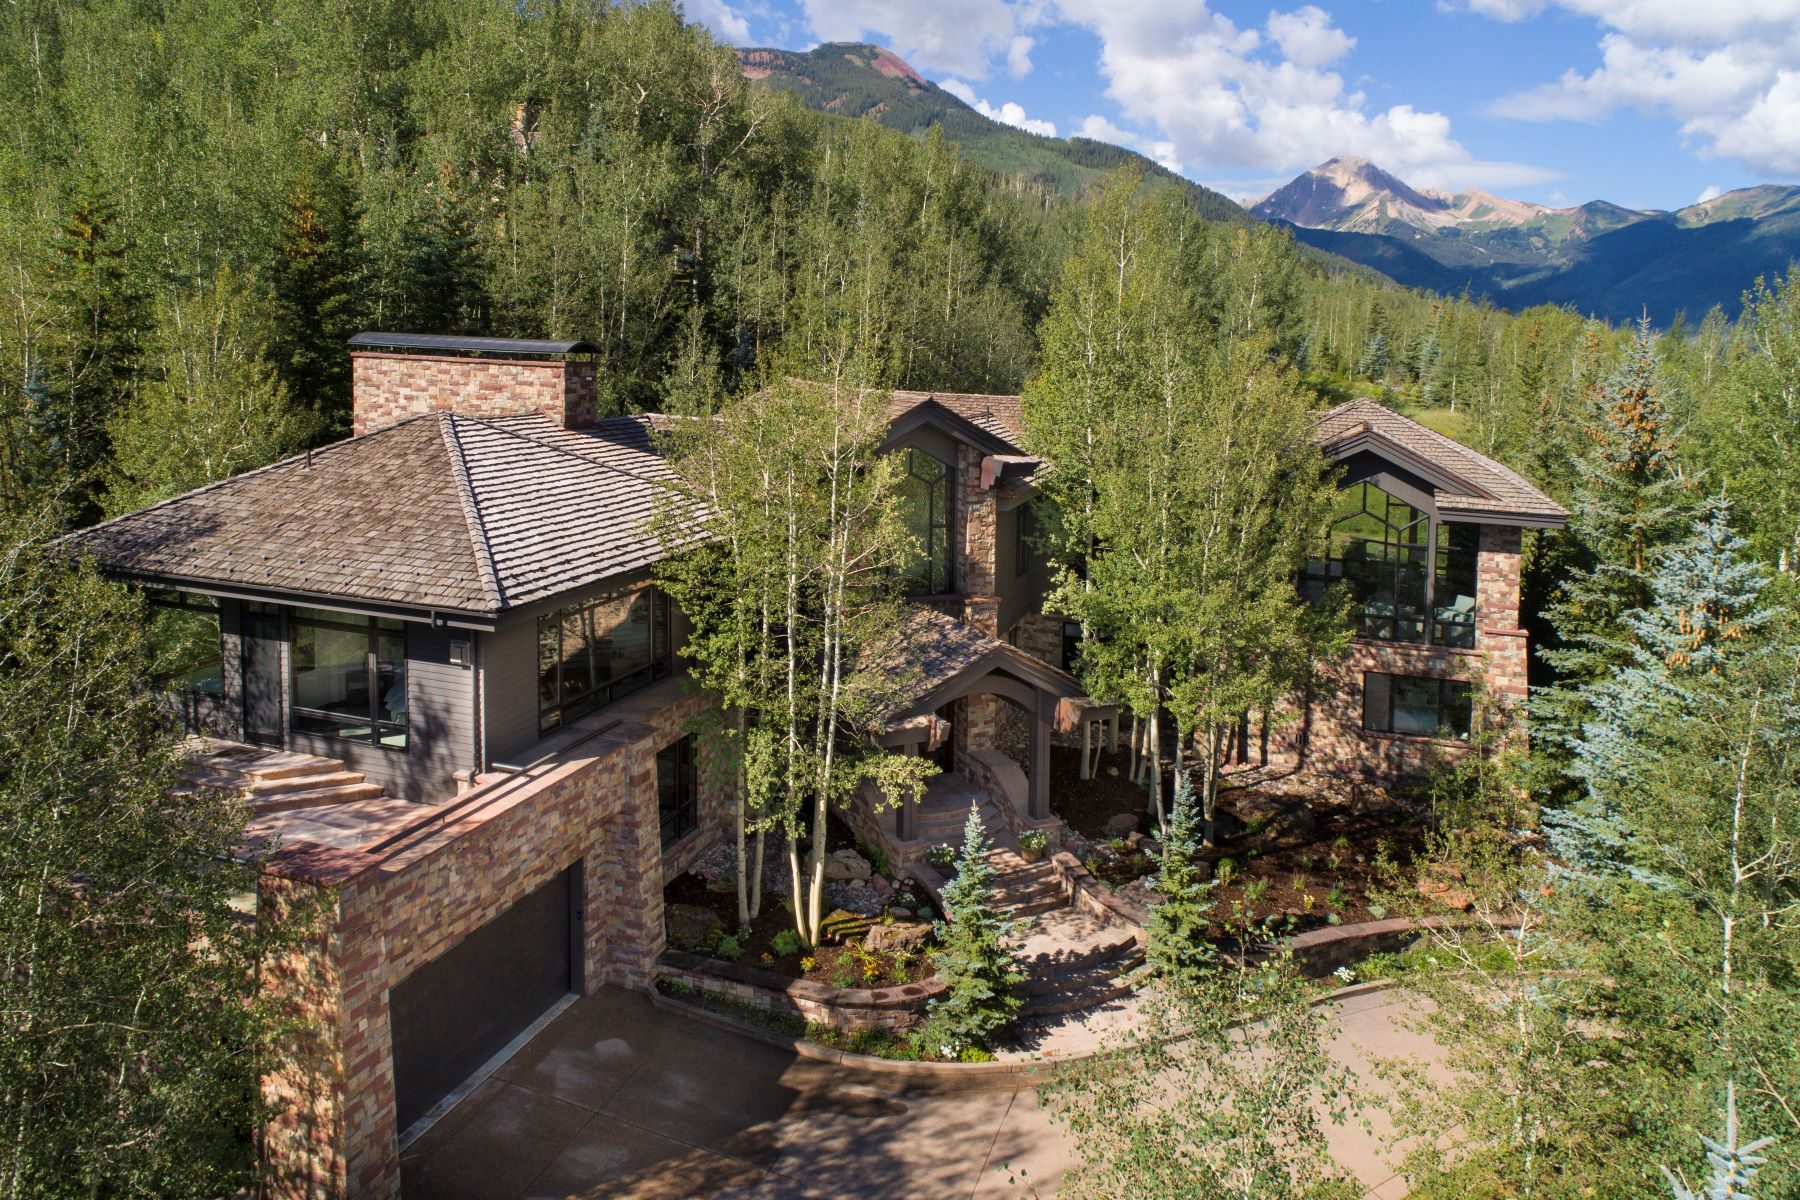 Property для того Продажа на Magnificent Ski-In/Ski-Out Snowmass Home 530 Divide Drive, Snowmass Village, Колорадо 81615 Соединенные Штаты